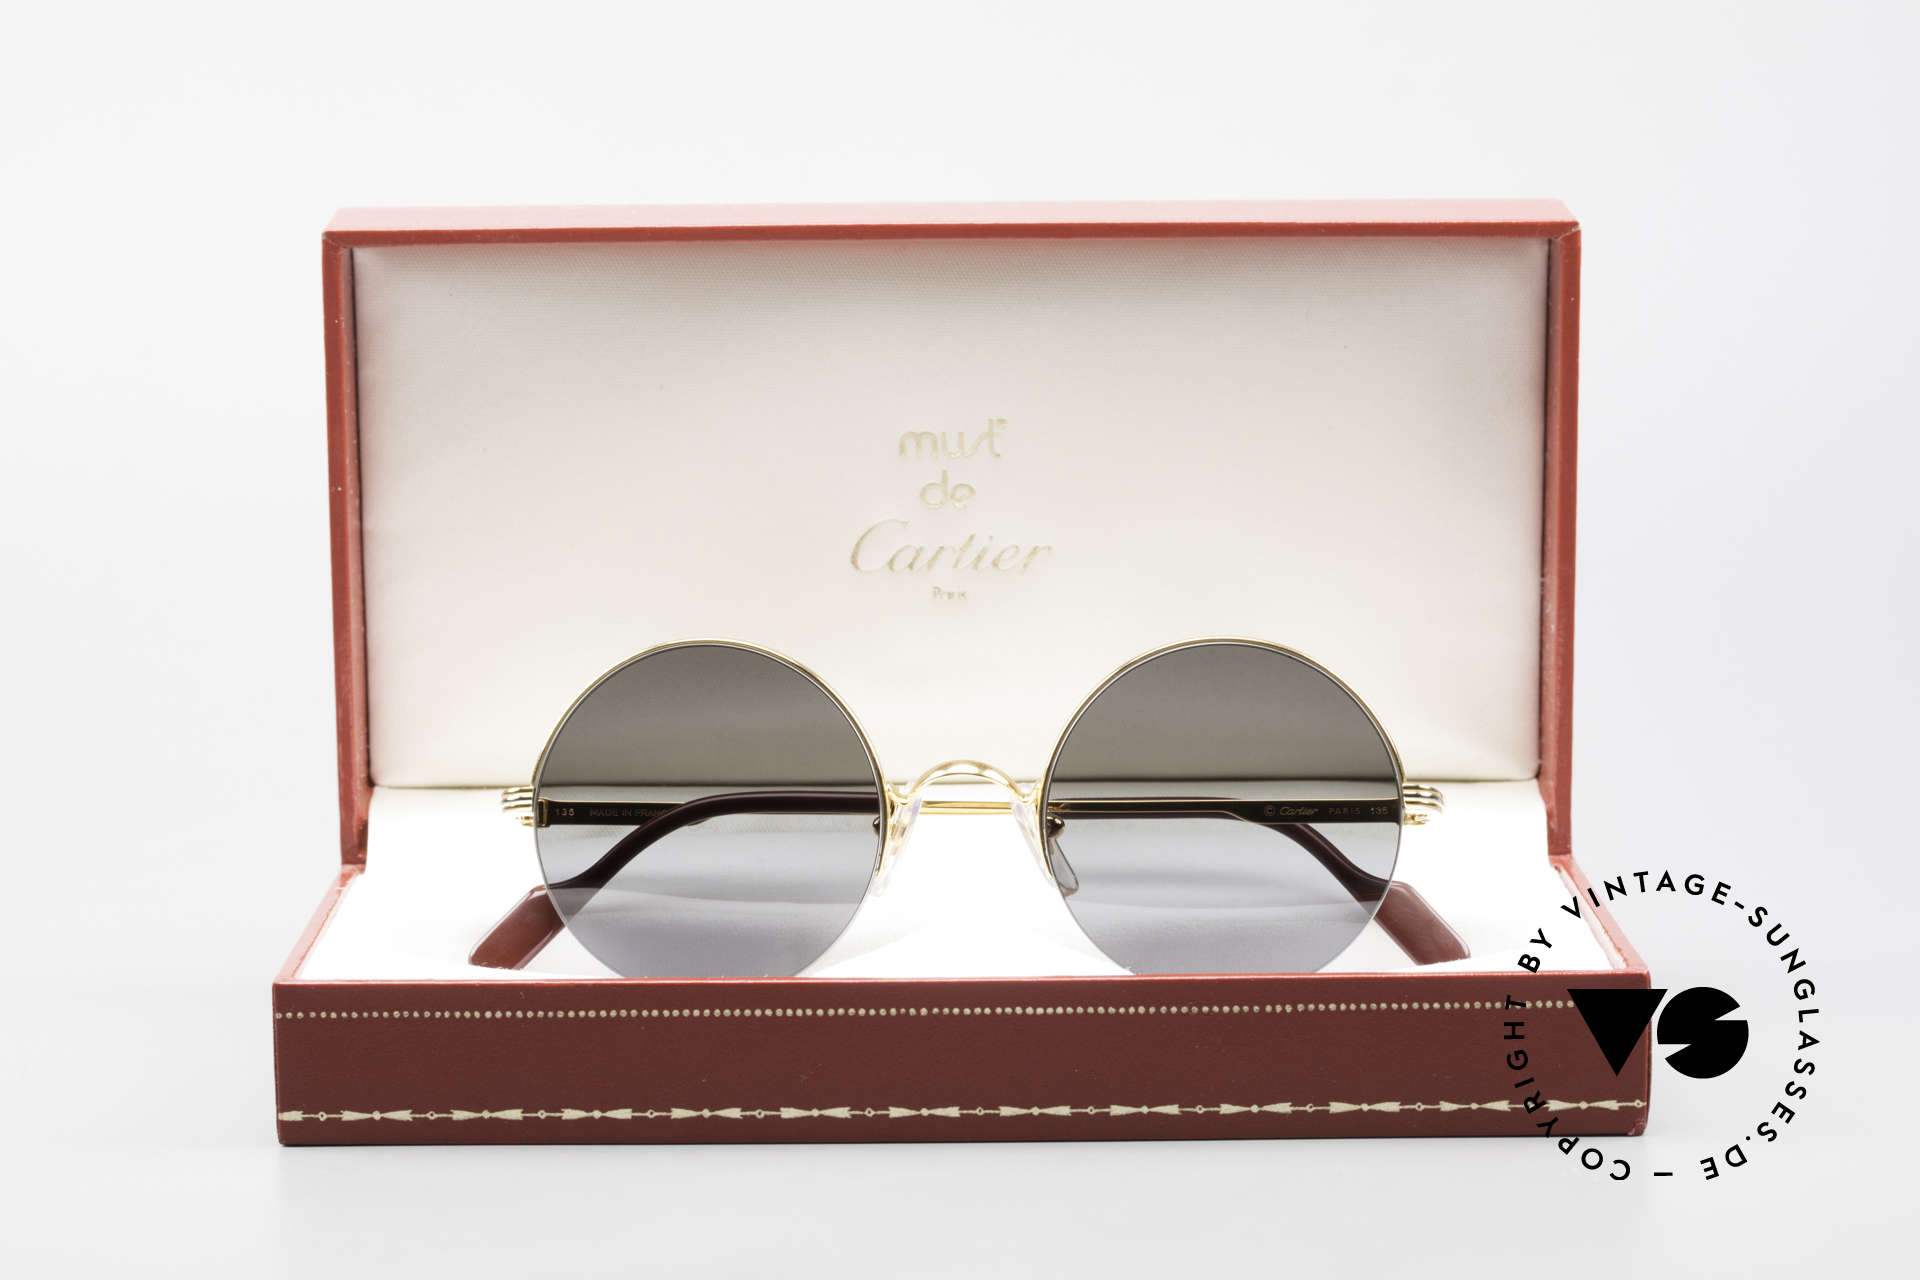 Cartier Mayfair Luxury Round Sunglasses 90's, NO retro shades, but a rare old Cartier original, Made for Men and Women